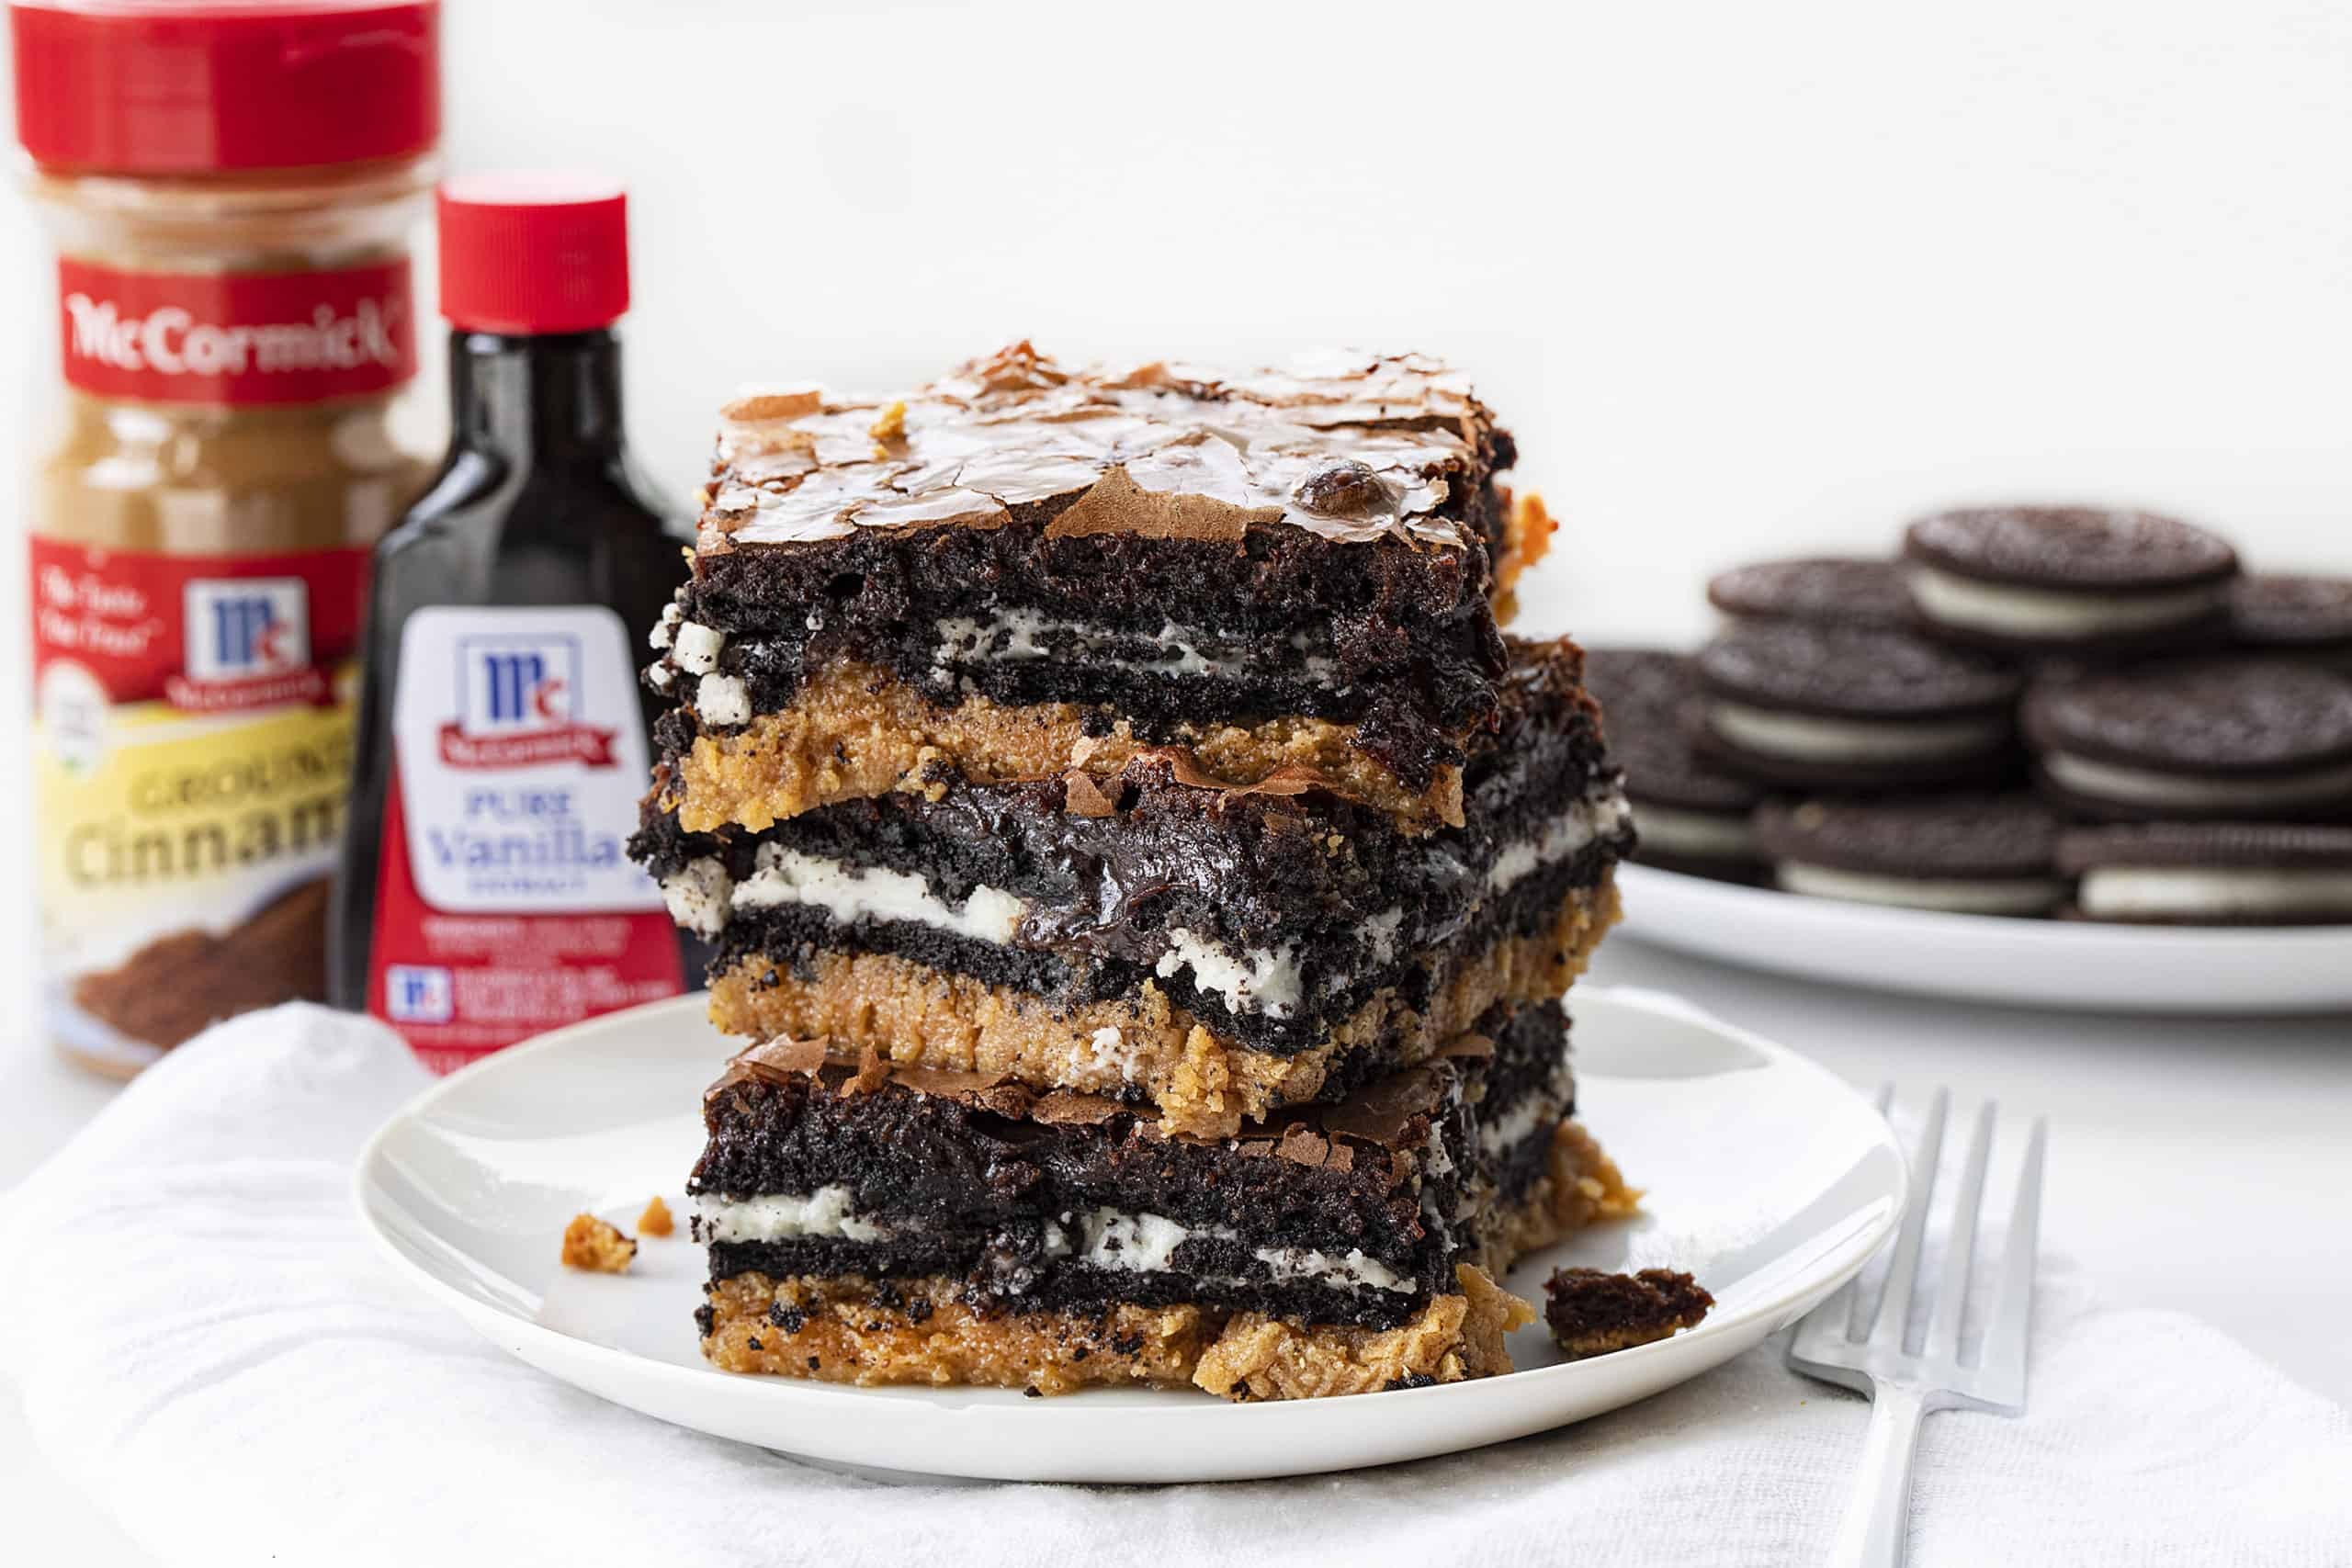 Stack of Peanut Butter Slutty Brownies with Oreos and Vanilla and Cinnamon in the Background